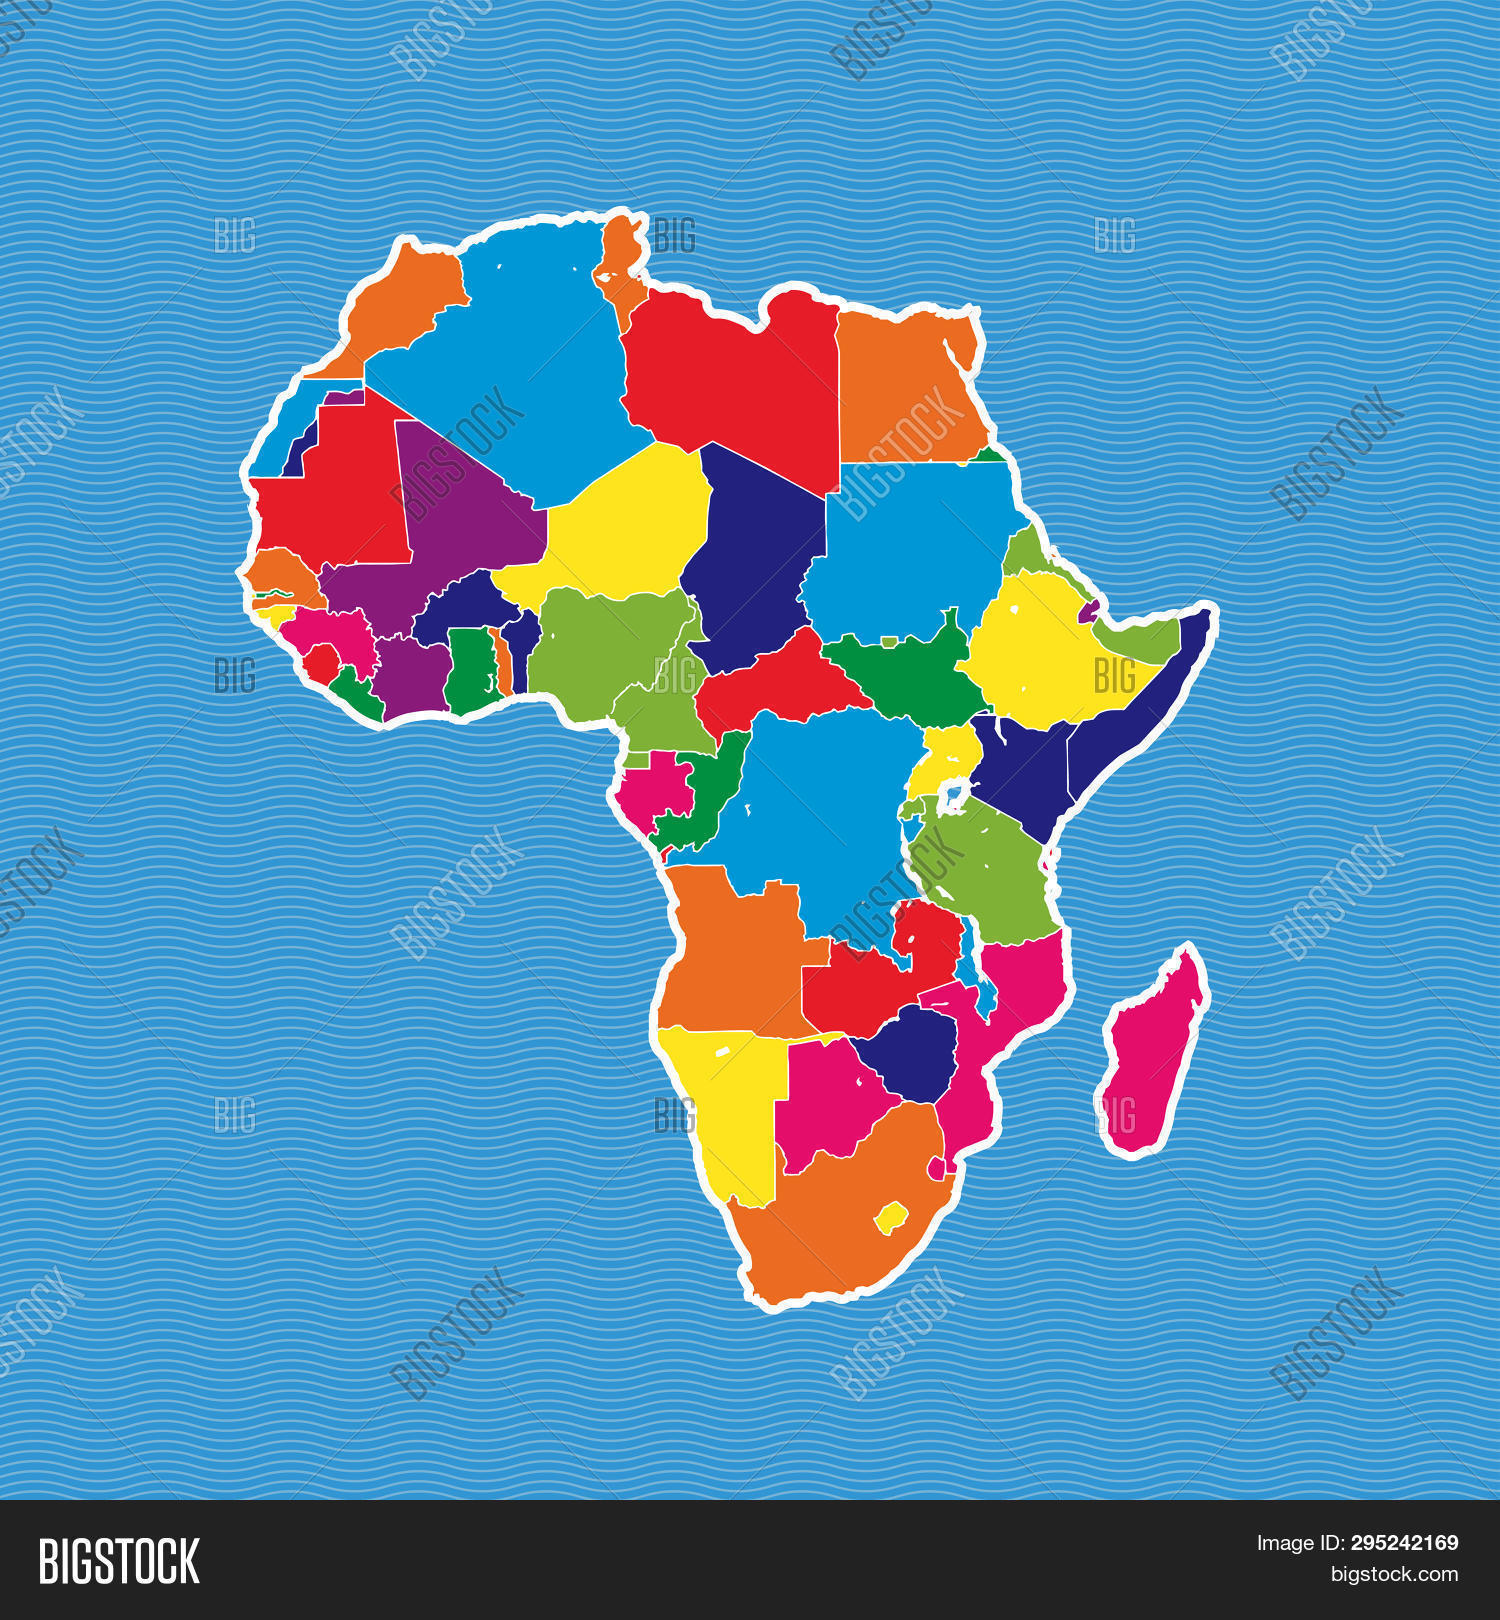 Map Of Africa Political.Africa Political Map Vector Photo Free Trial Bigstock